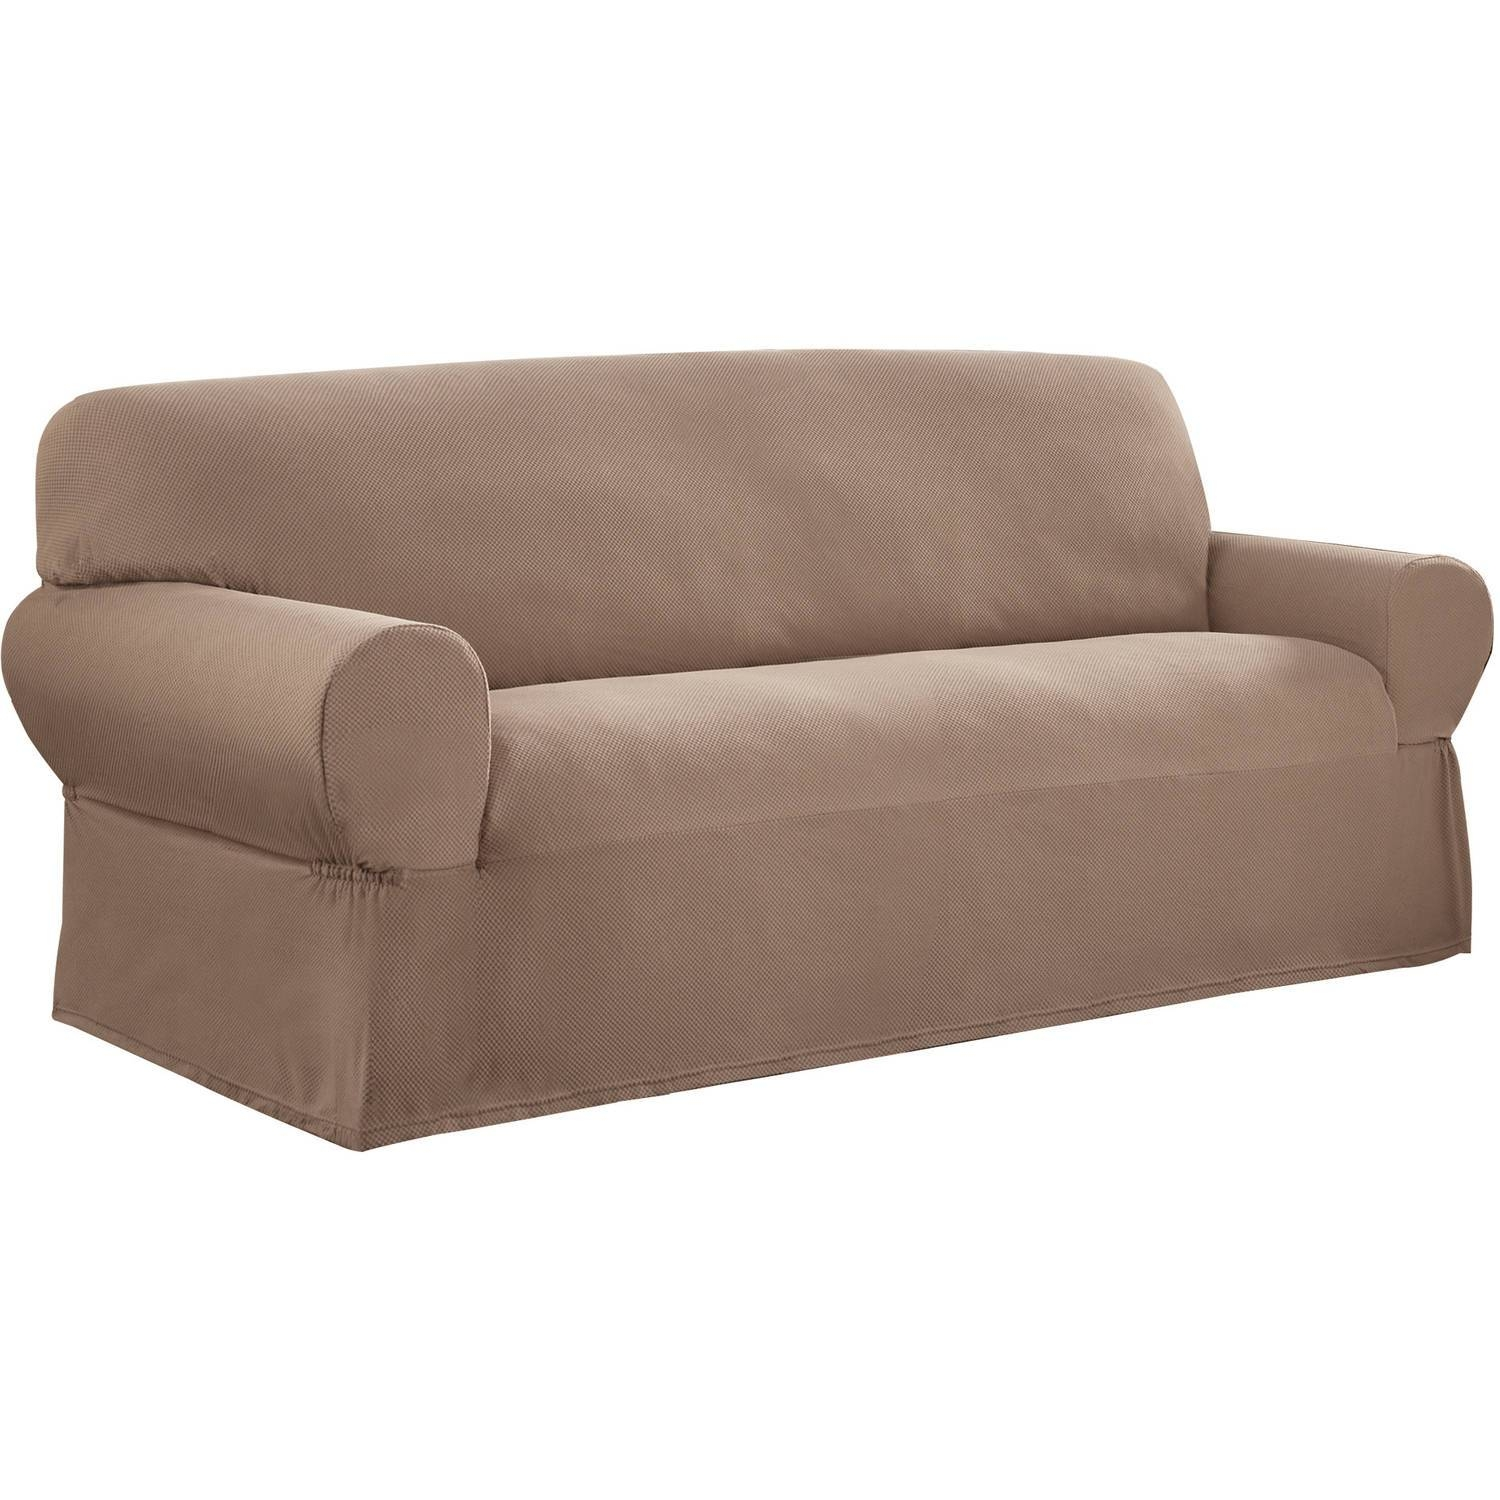 Slipcovers - Walmart with Covers For Sofas (Image 22 of 30)